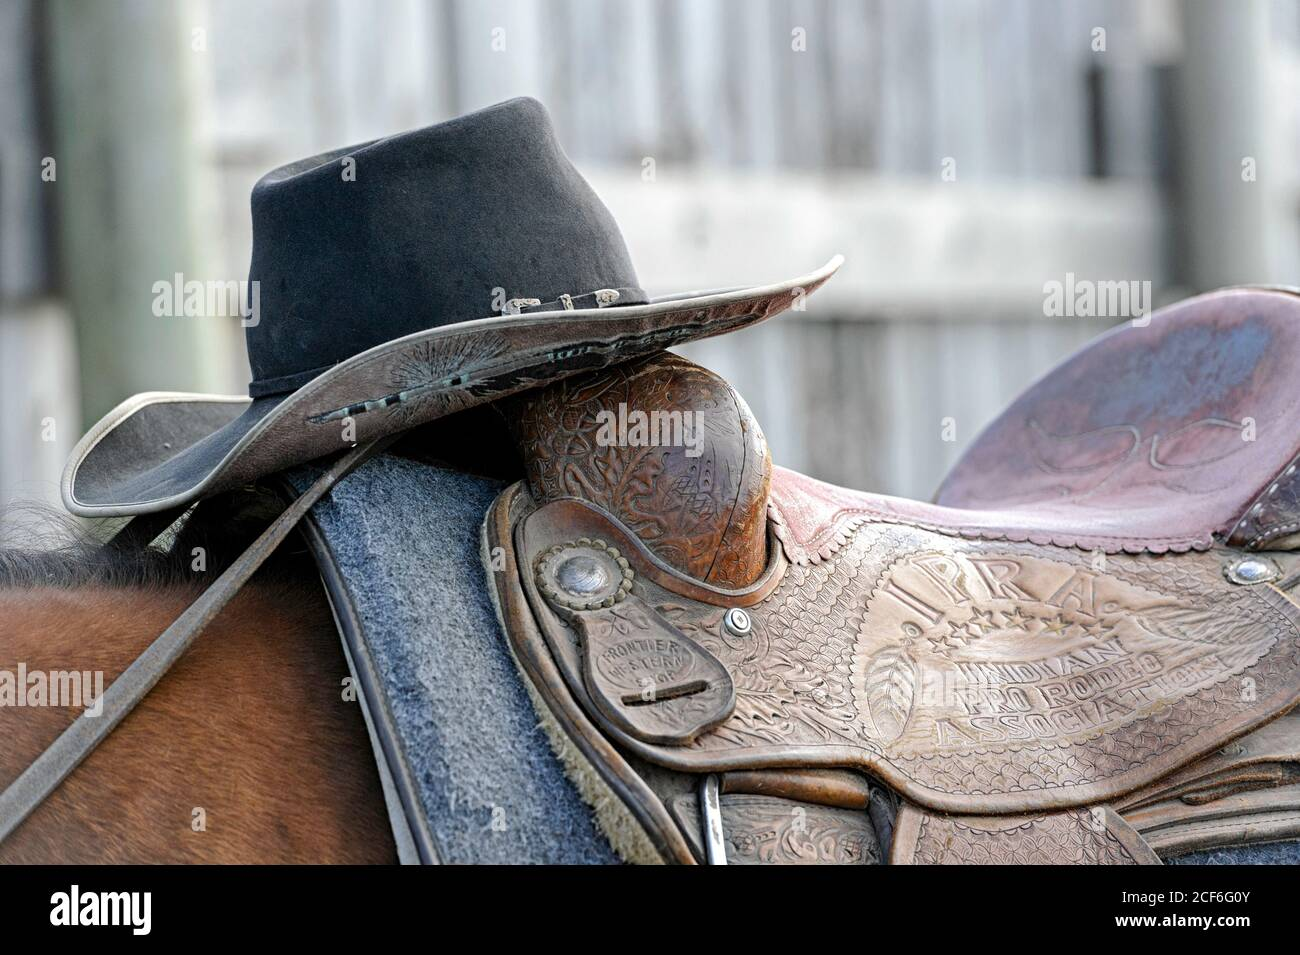 cowboy-hat-and-horse-saddle-at-the-indian-rodeo-grounds-tsuu-tina-nation-alberta-canada-2CF6G0Y.jpg